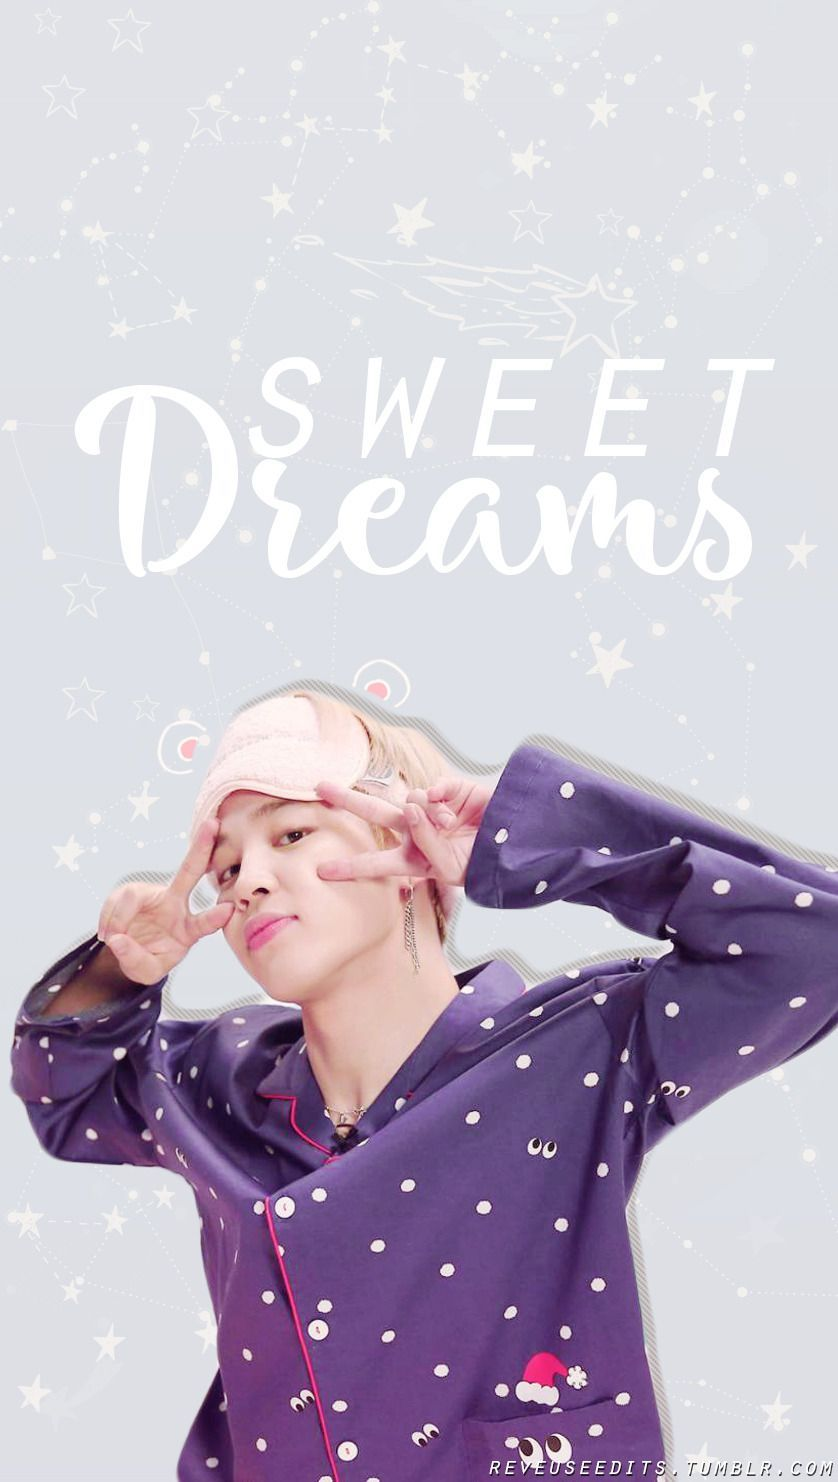 Jimin Bts Cute Wallpapers Posted By Ryan Anderson